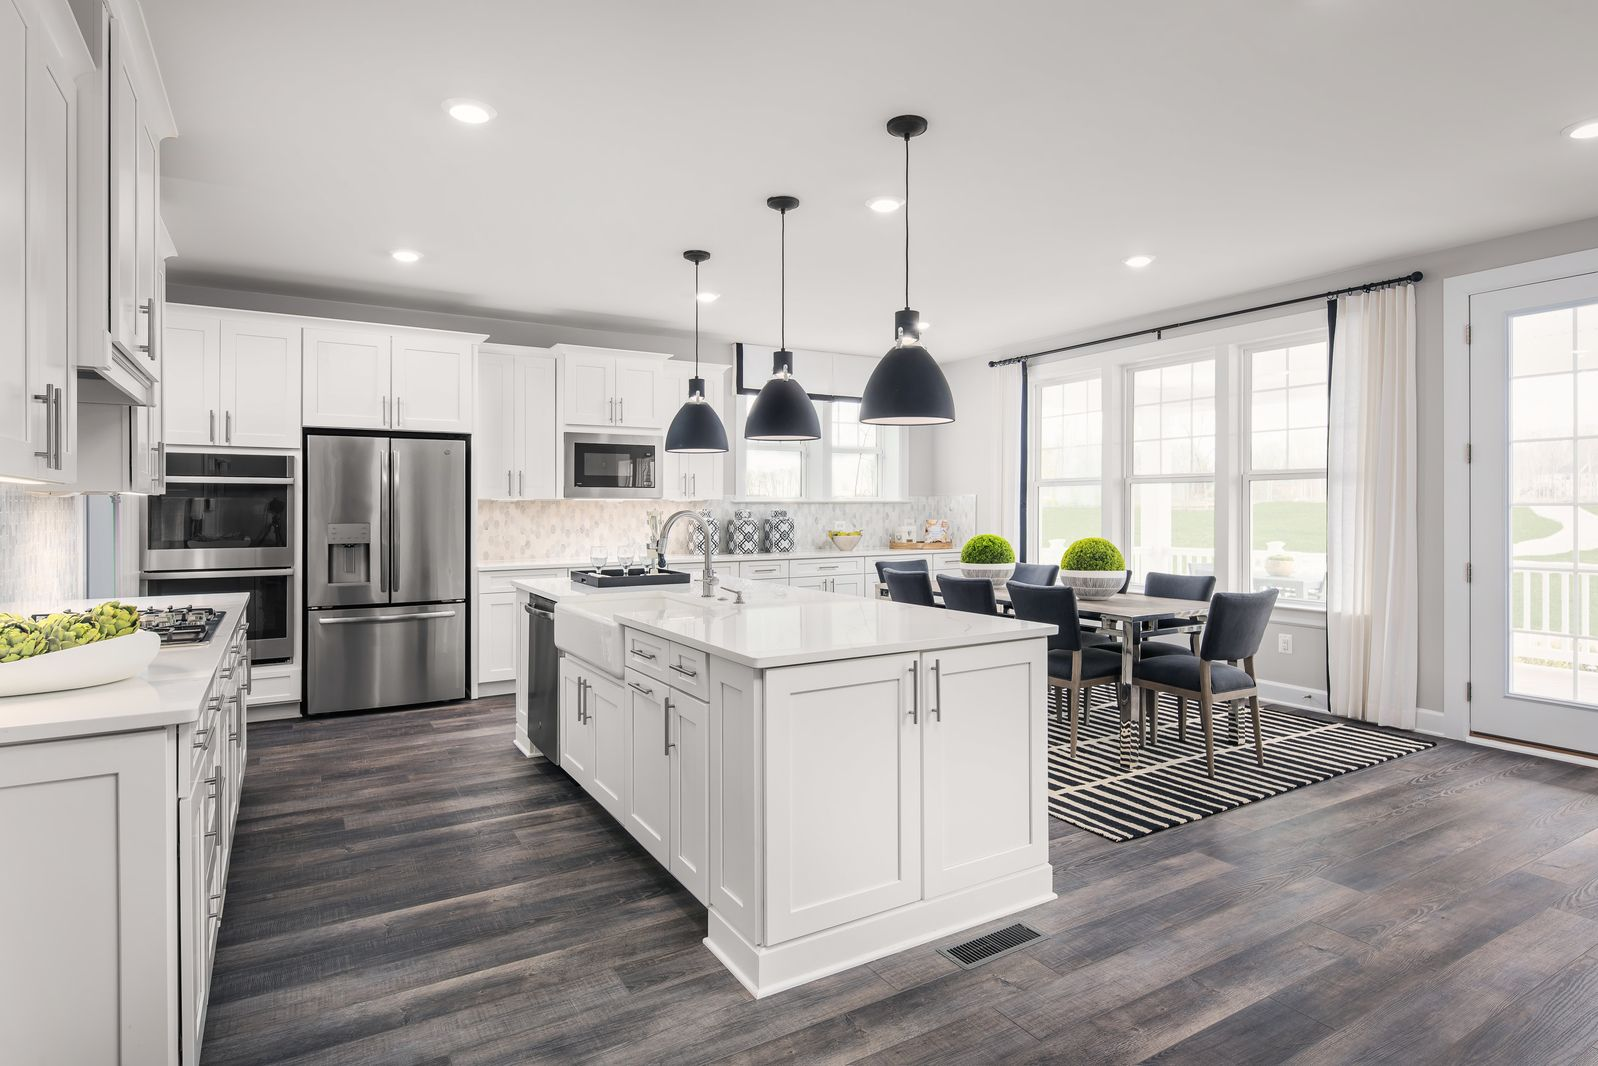 Kitchen featured in the Stratford Hall By NVHomes in Washington, MD